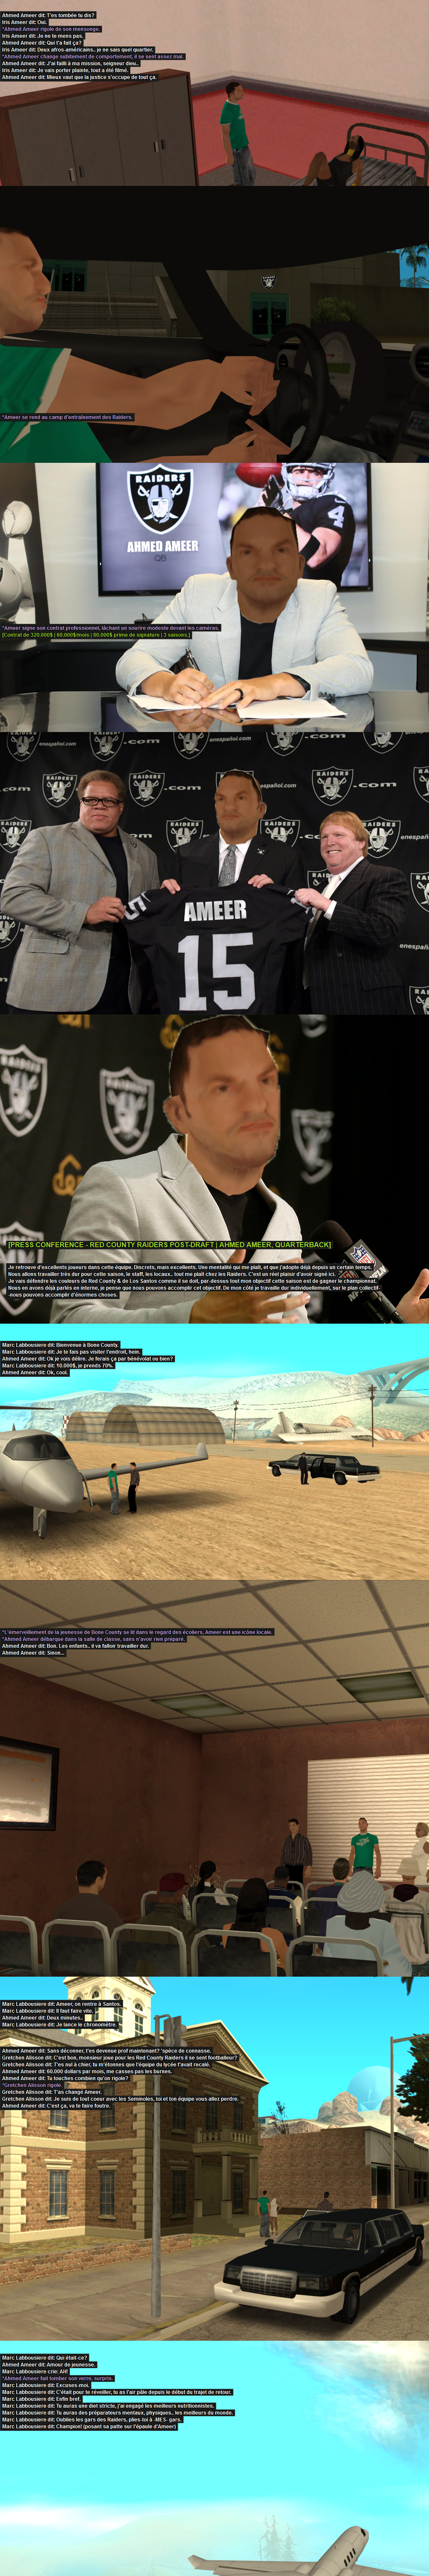 San Andreas Football Championship - dans les coulisses du football pro. (1) - Page 14 13322652505a47bedfd62abzrzre